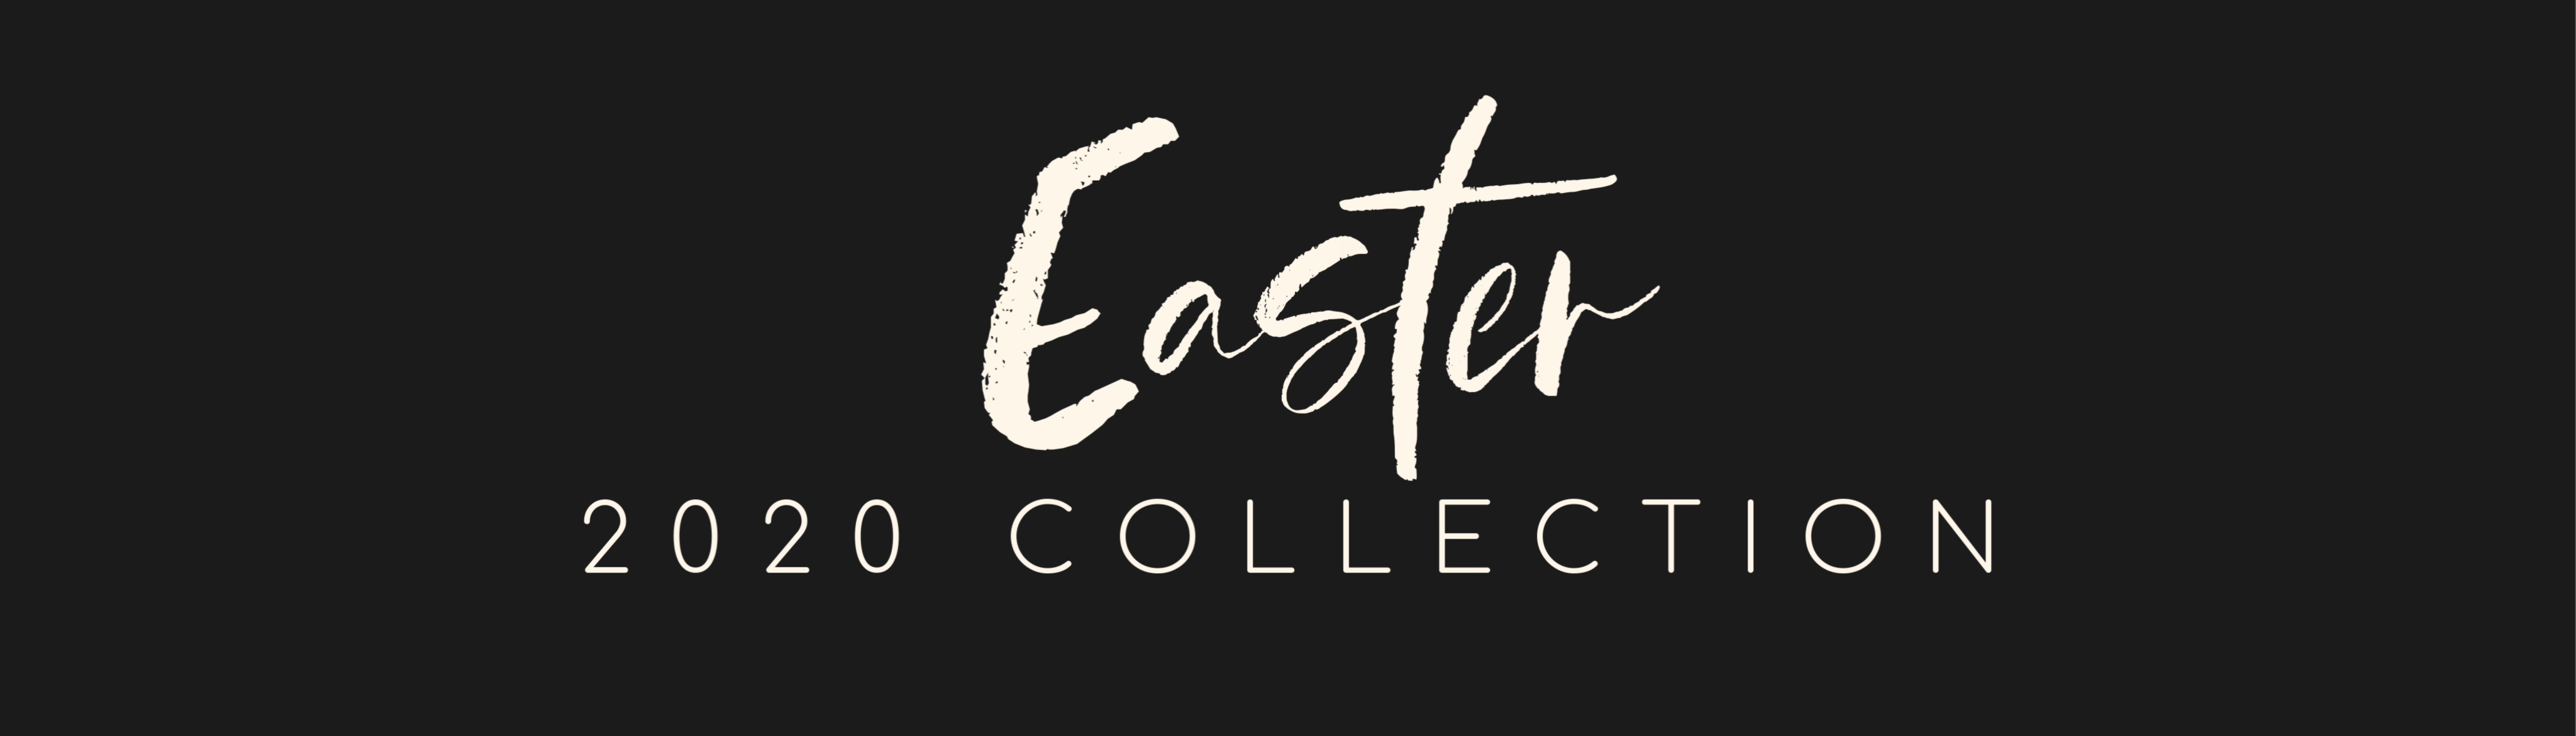 easter-2020-collection.jpg